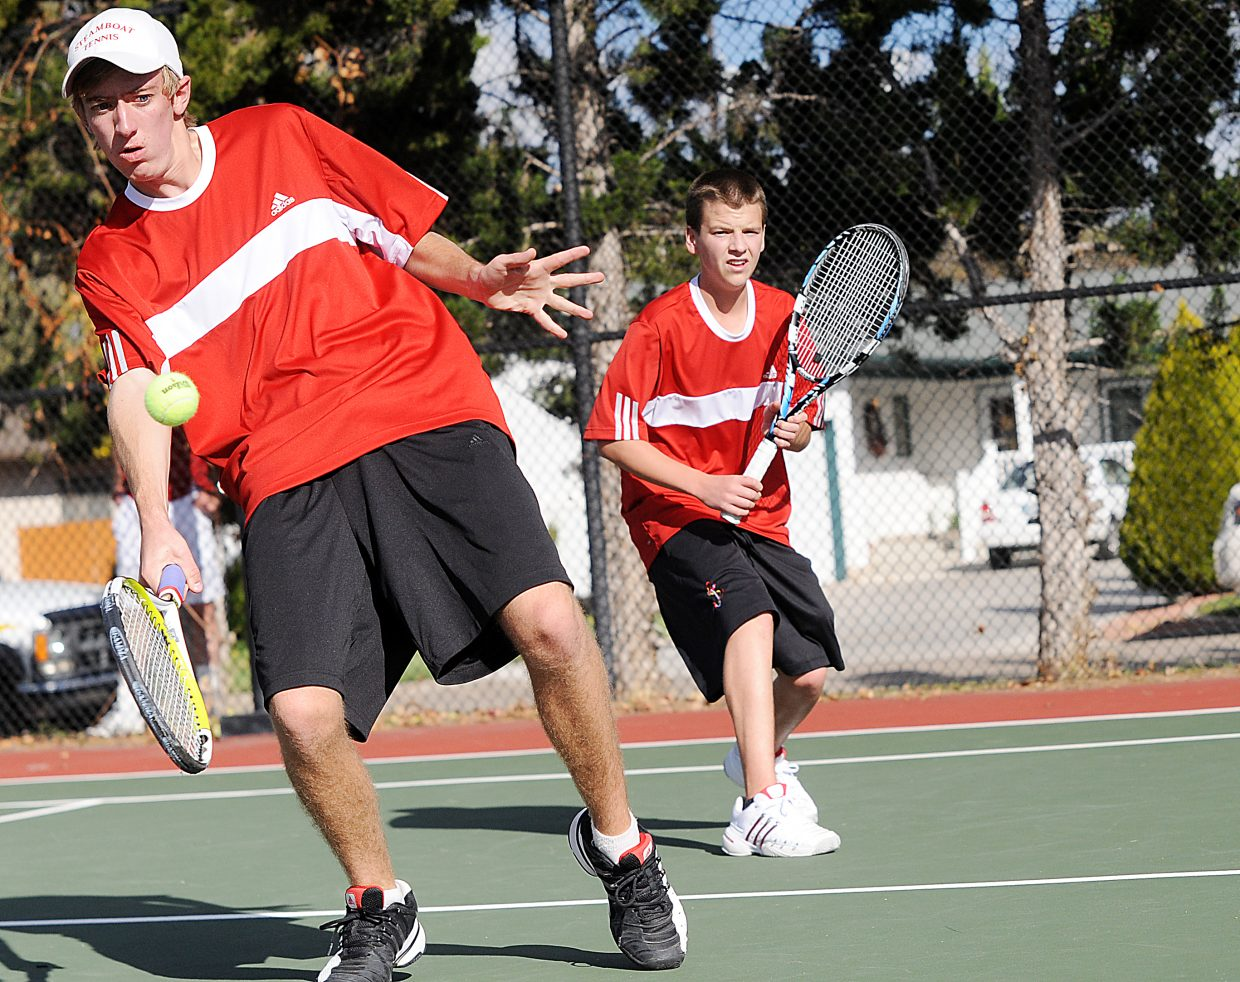 Jeff Lambart eyes a ball Thursday at the state tennis tournament in Pueblo.